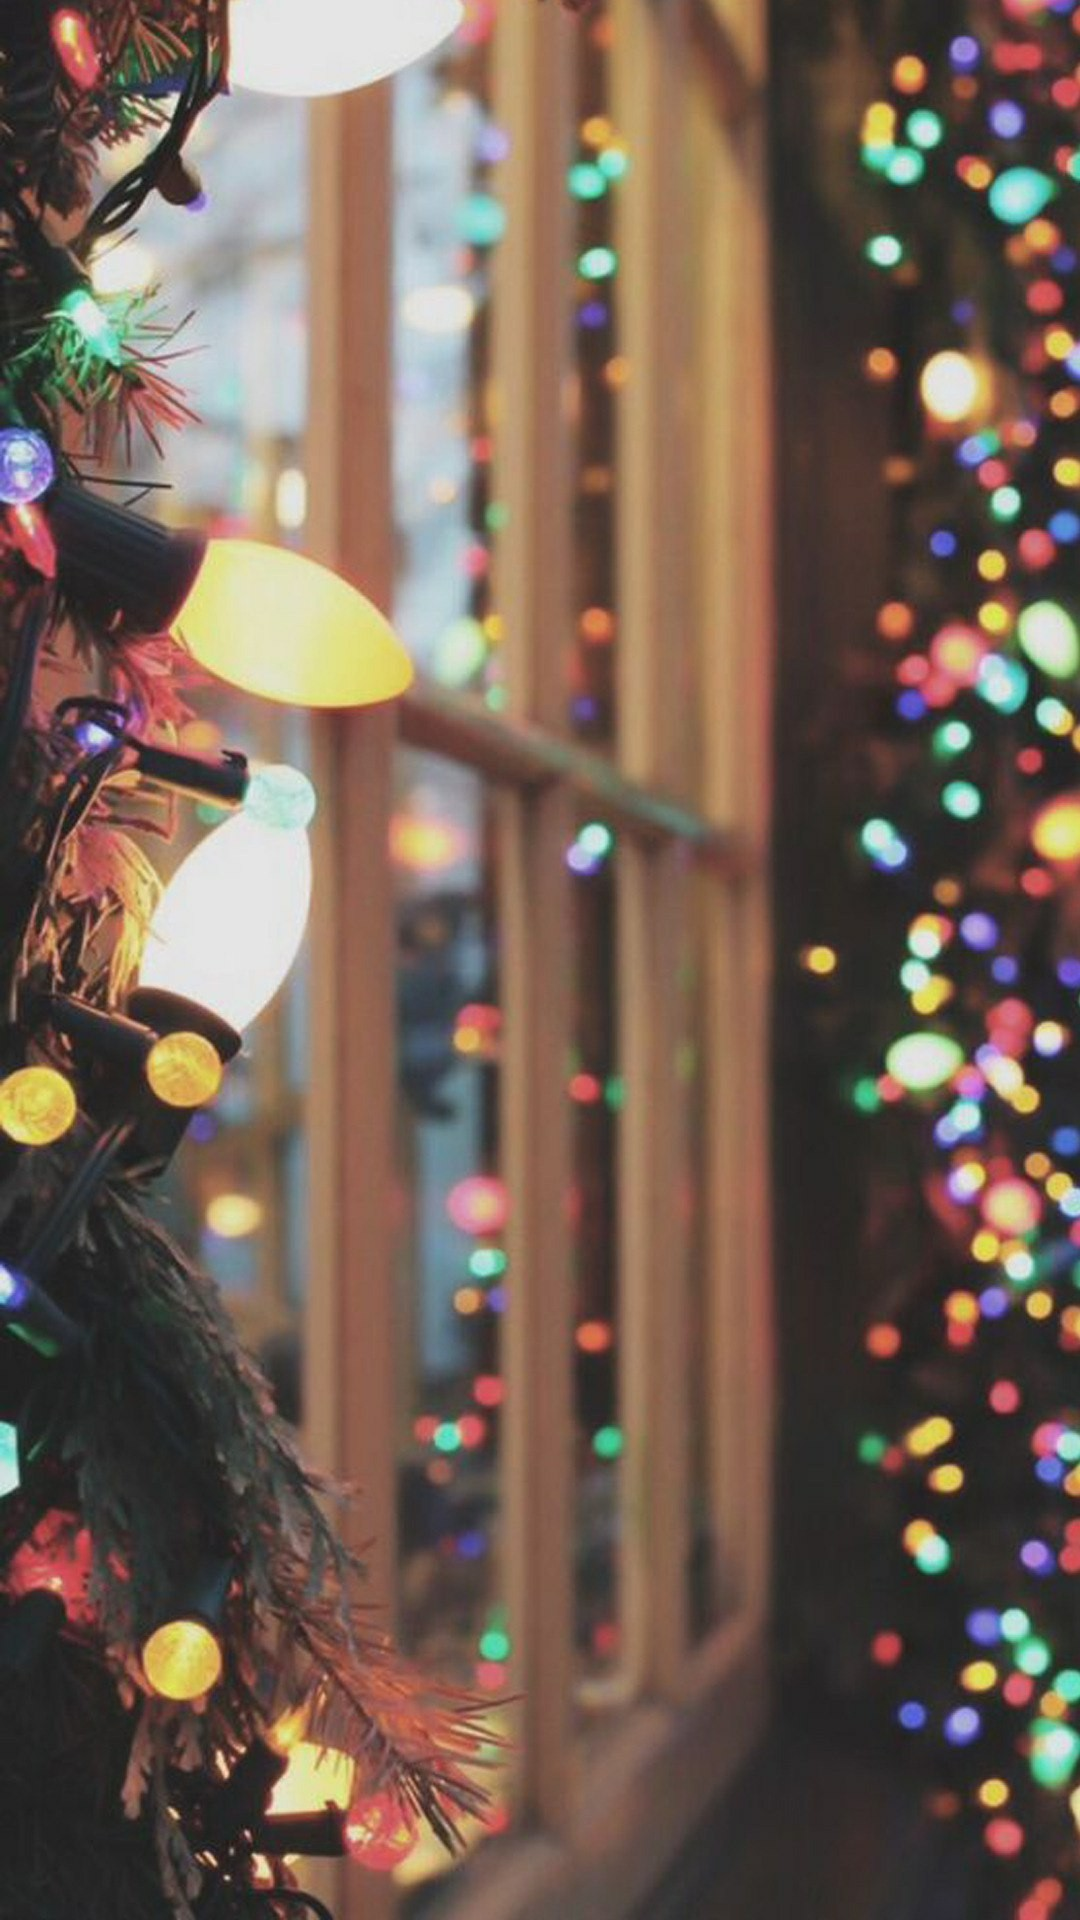 Christmas Lights wallpaper for android